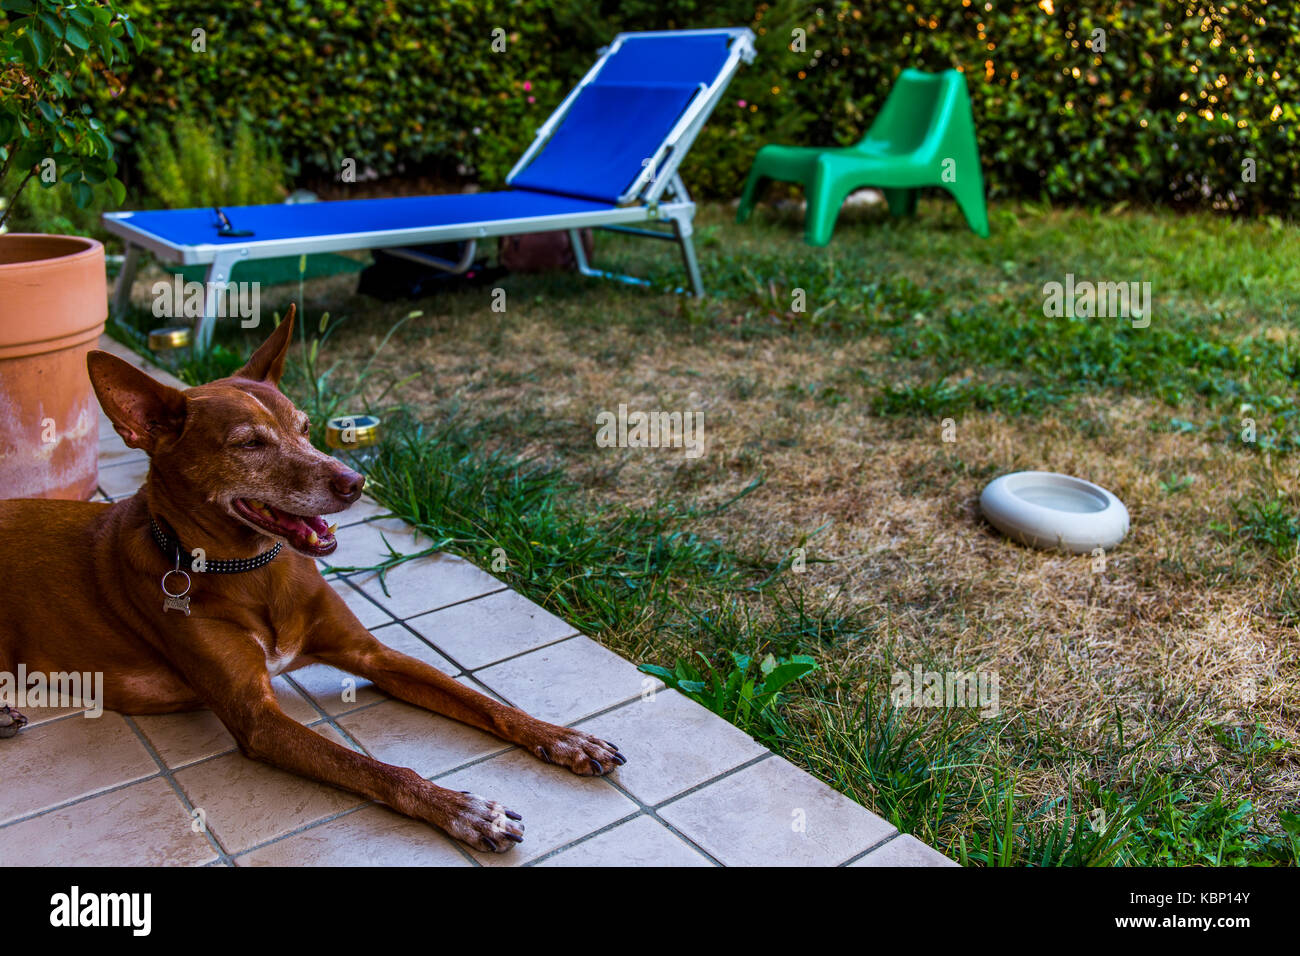 An Andalusian Hound (Canis lupus familiaris) laying on tiles in a garden with grass and sunbed in the background. Stock Photo